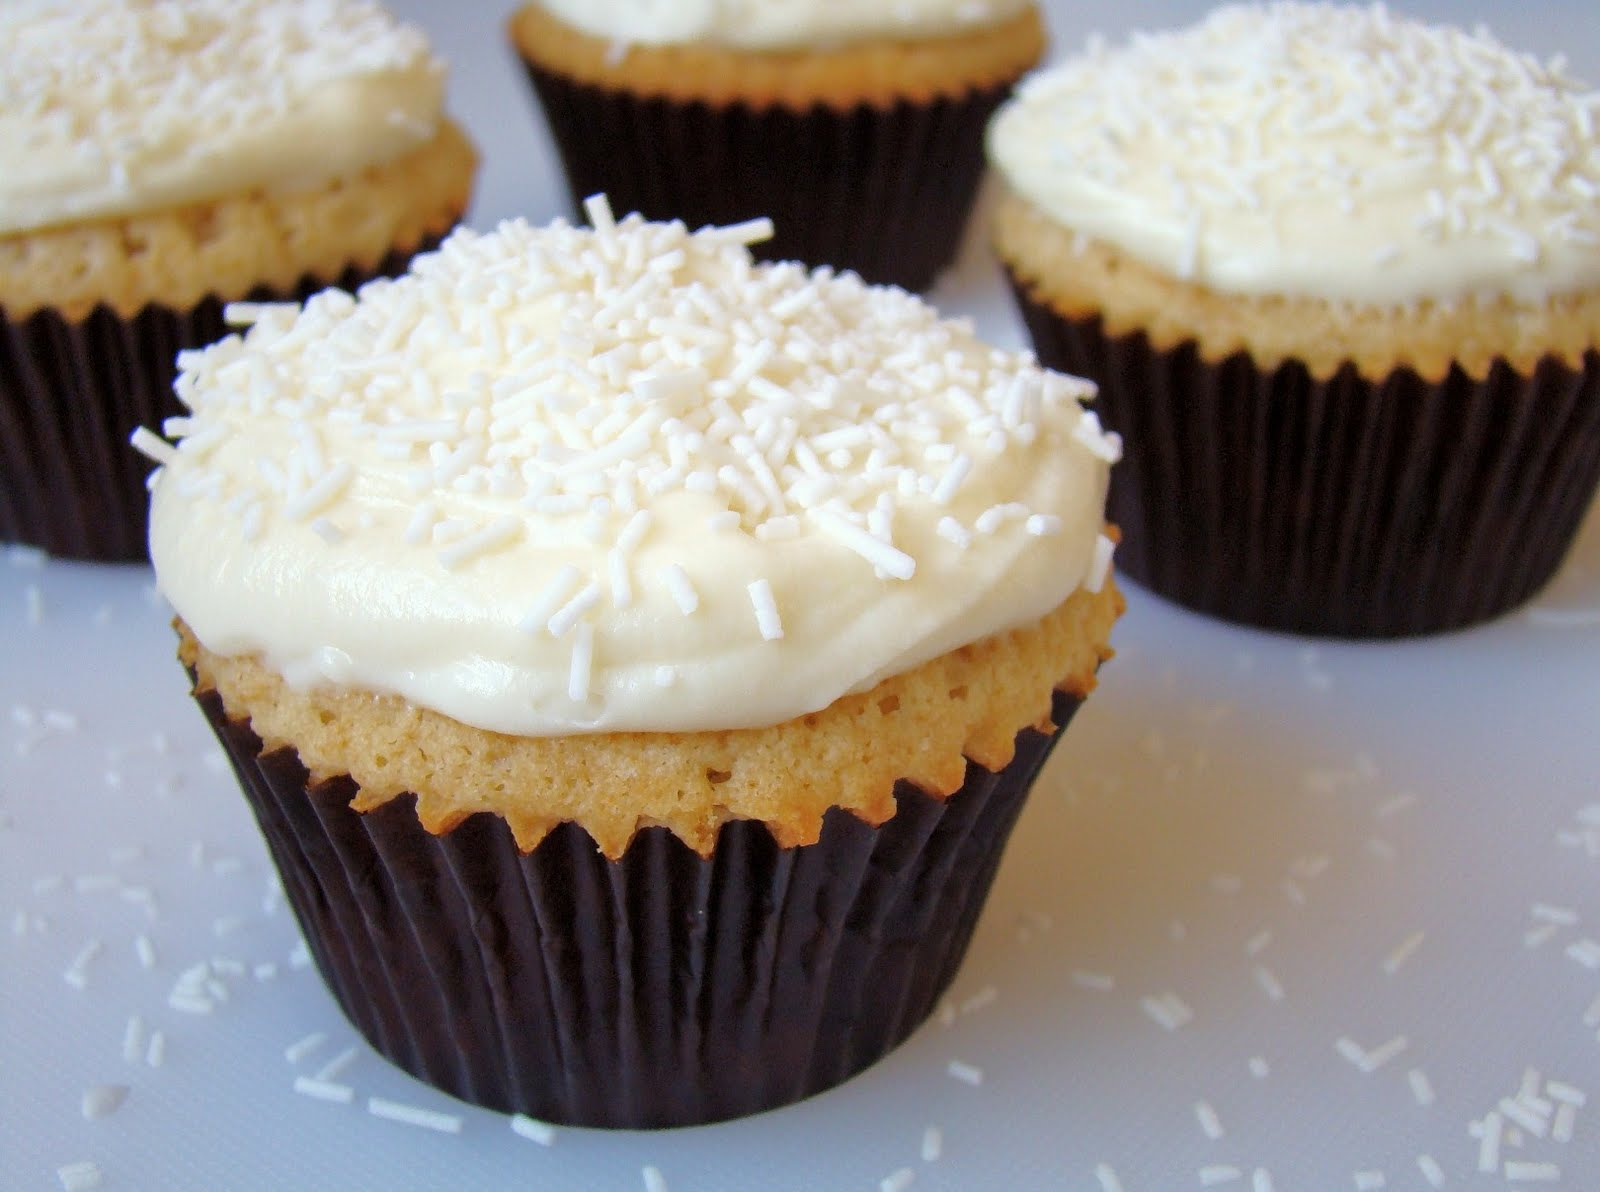 ... Cakes , Cupcakes , Frostings and Fillings »White Chocolate Cupcakes